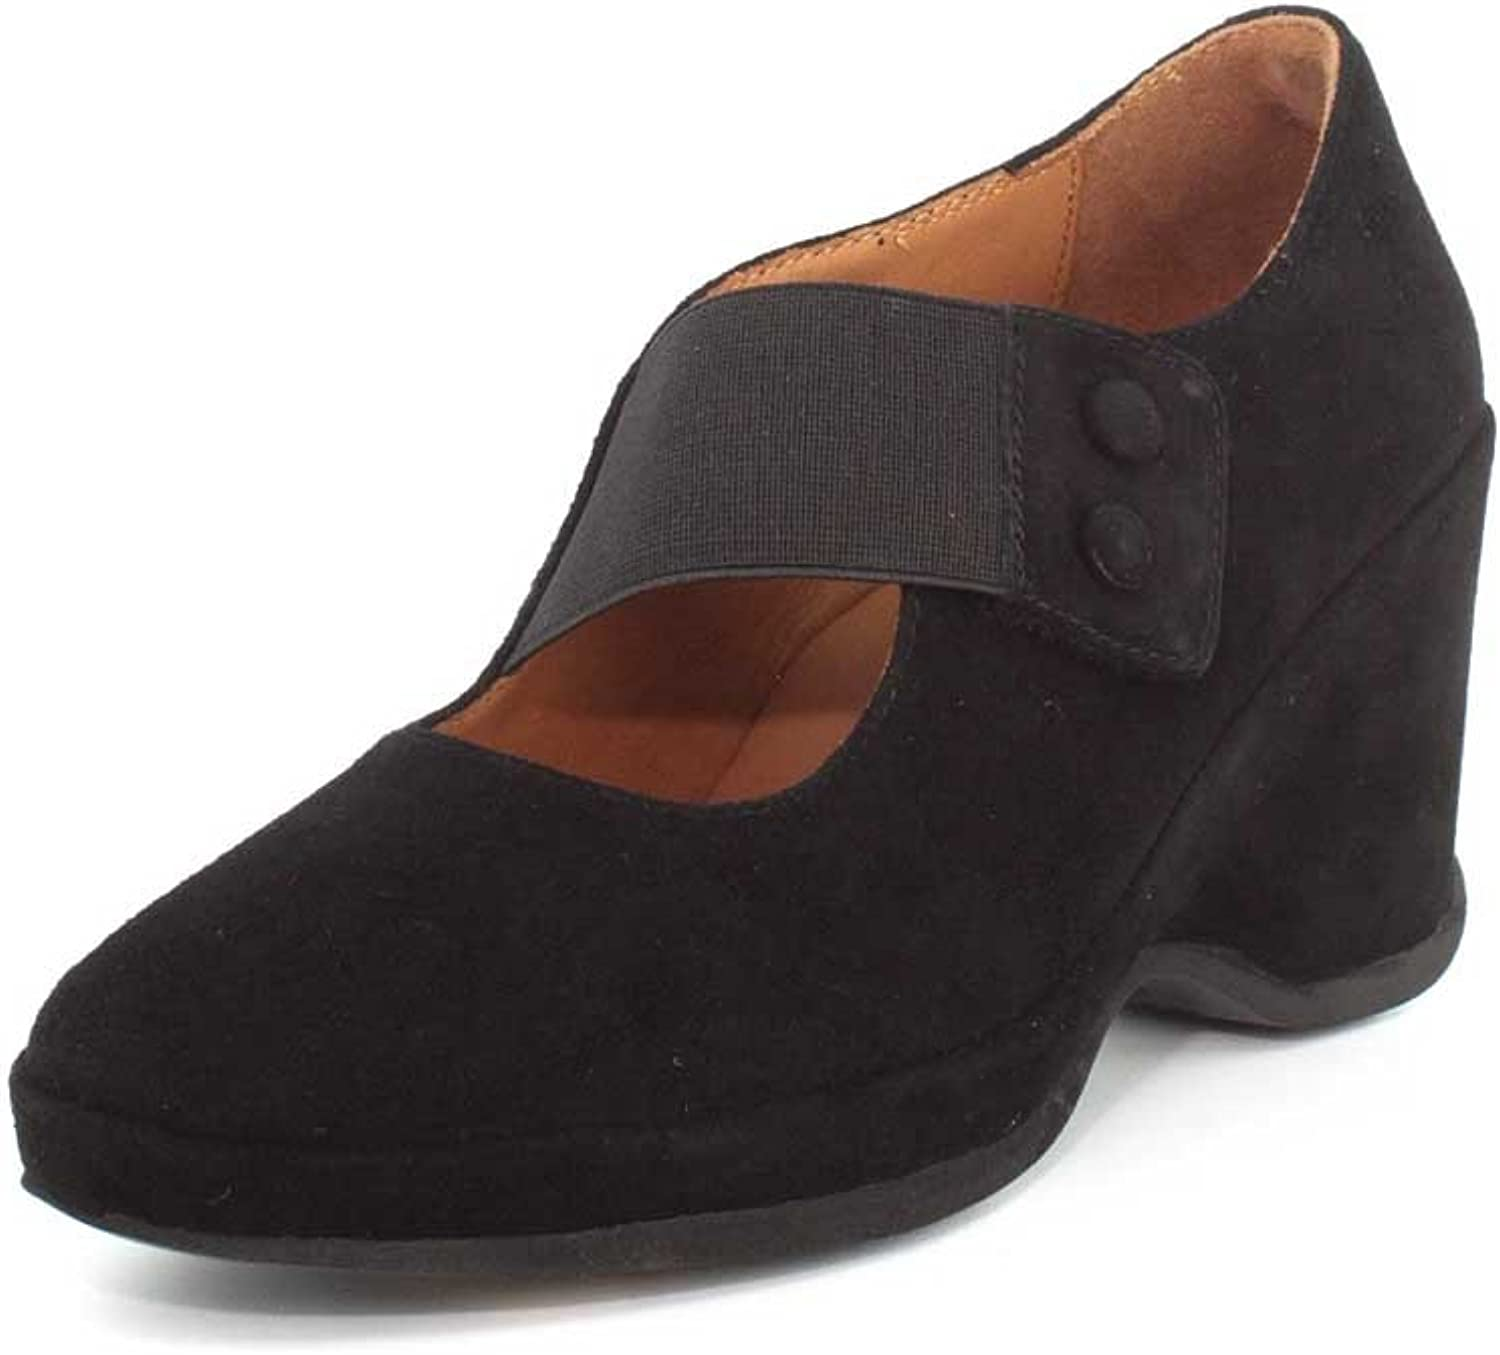 L'Amour des Pieds Women's Oriana Wedge